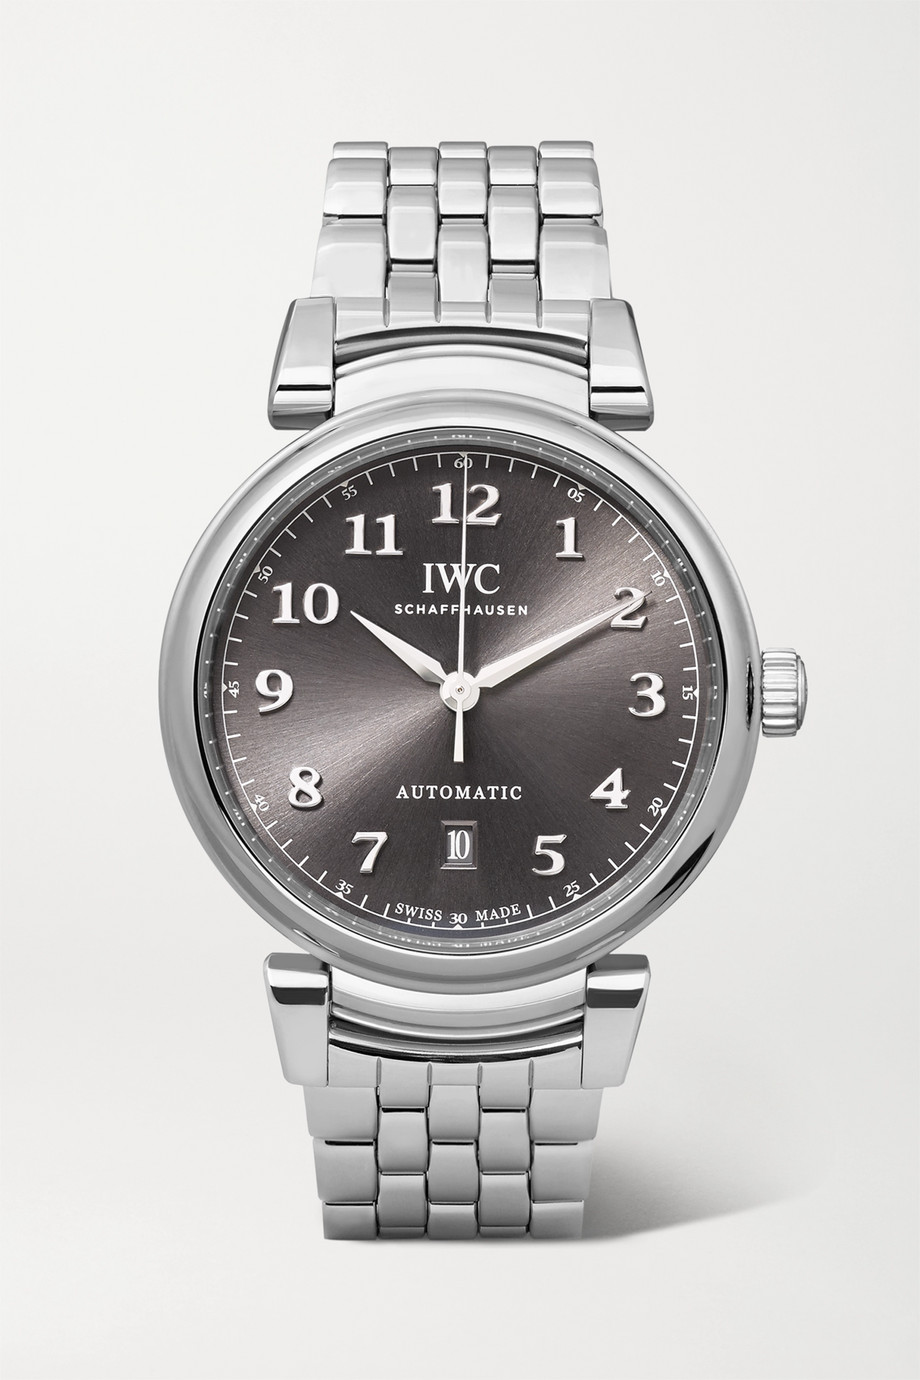 IWC SCHAFFHAUSEN Da Vinci Automatic 40mm stainless steel watch